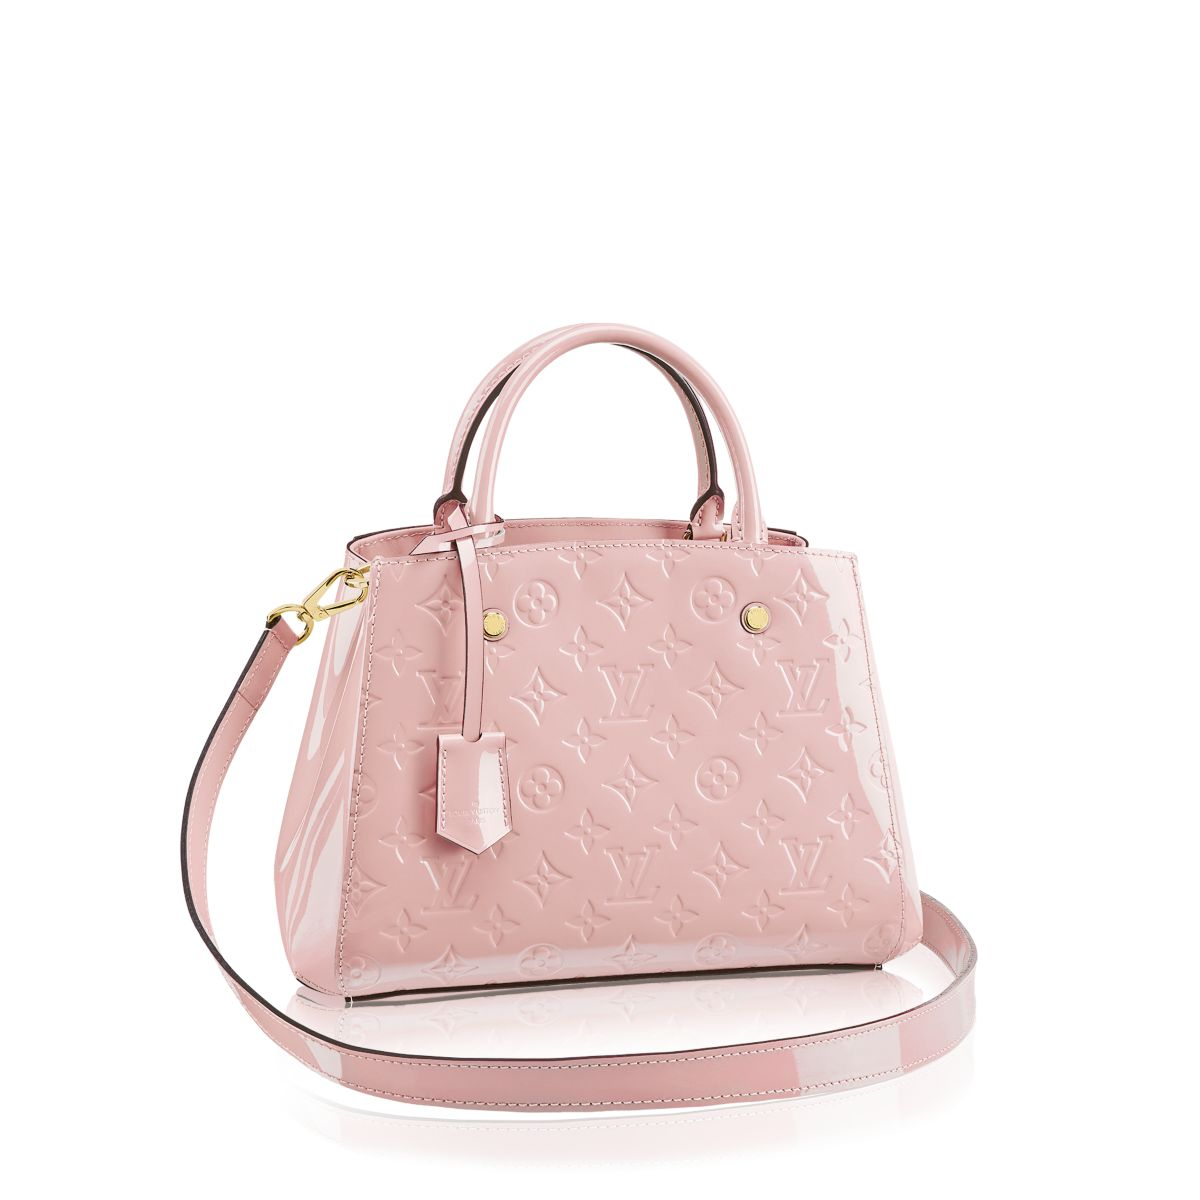 Louis vuitton montaigne bb in pink lyst for Louis vuitton miroir bags